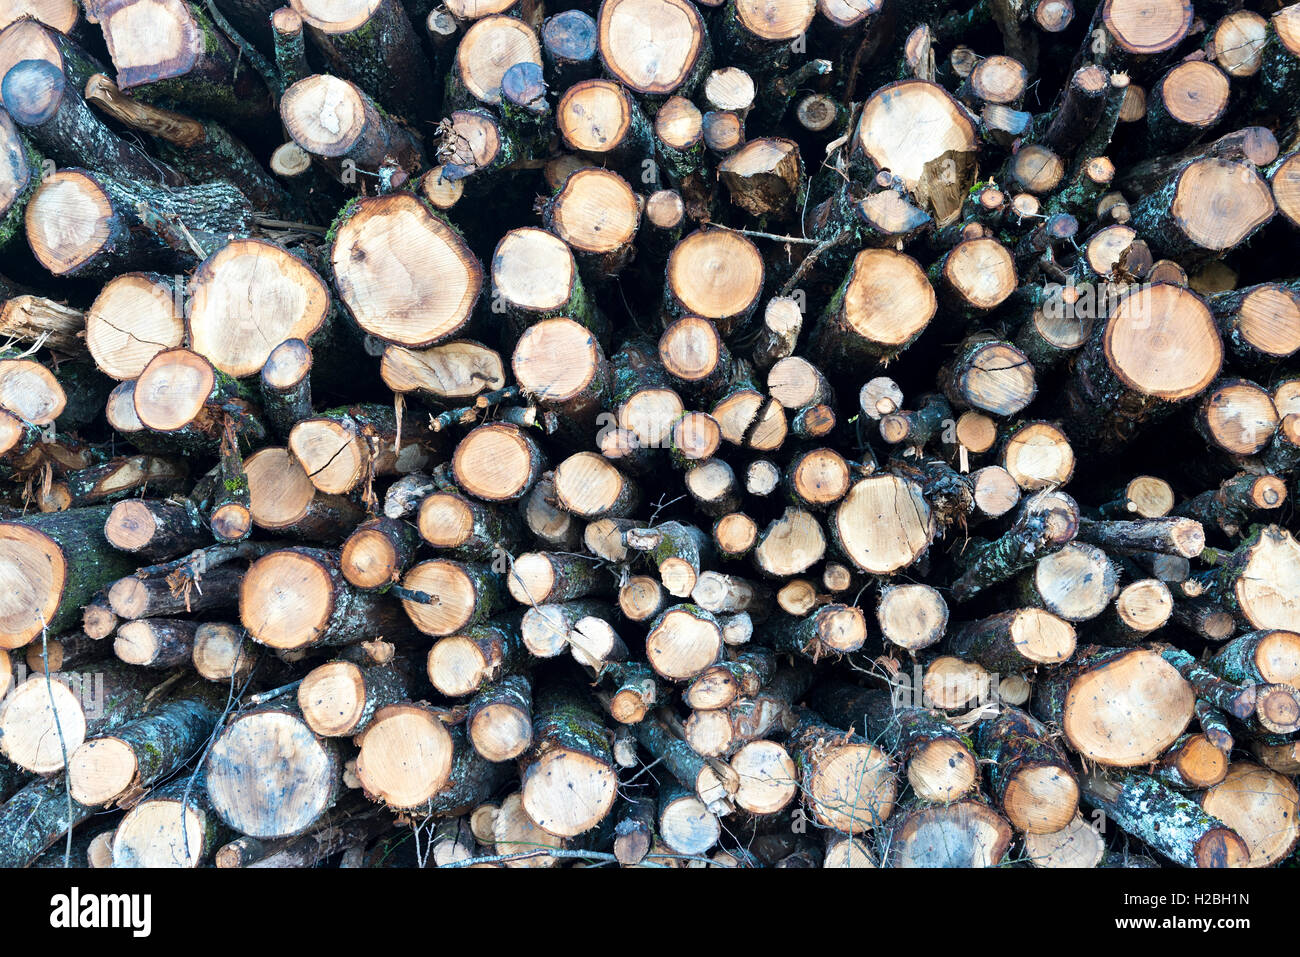 Stacked logs in the forest of Bogis-Bossey, Vaud, Switzerland - Stock Image